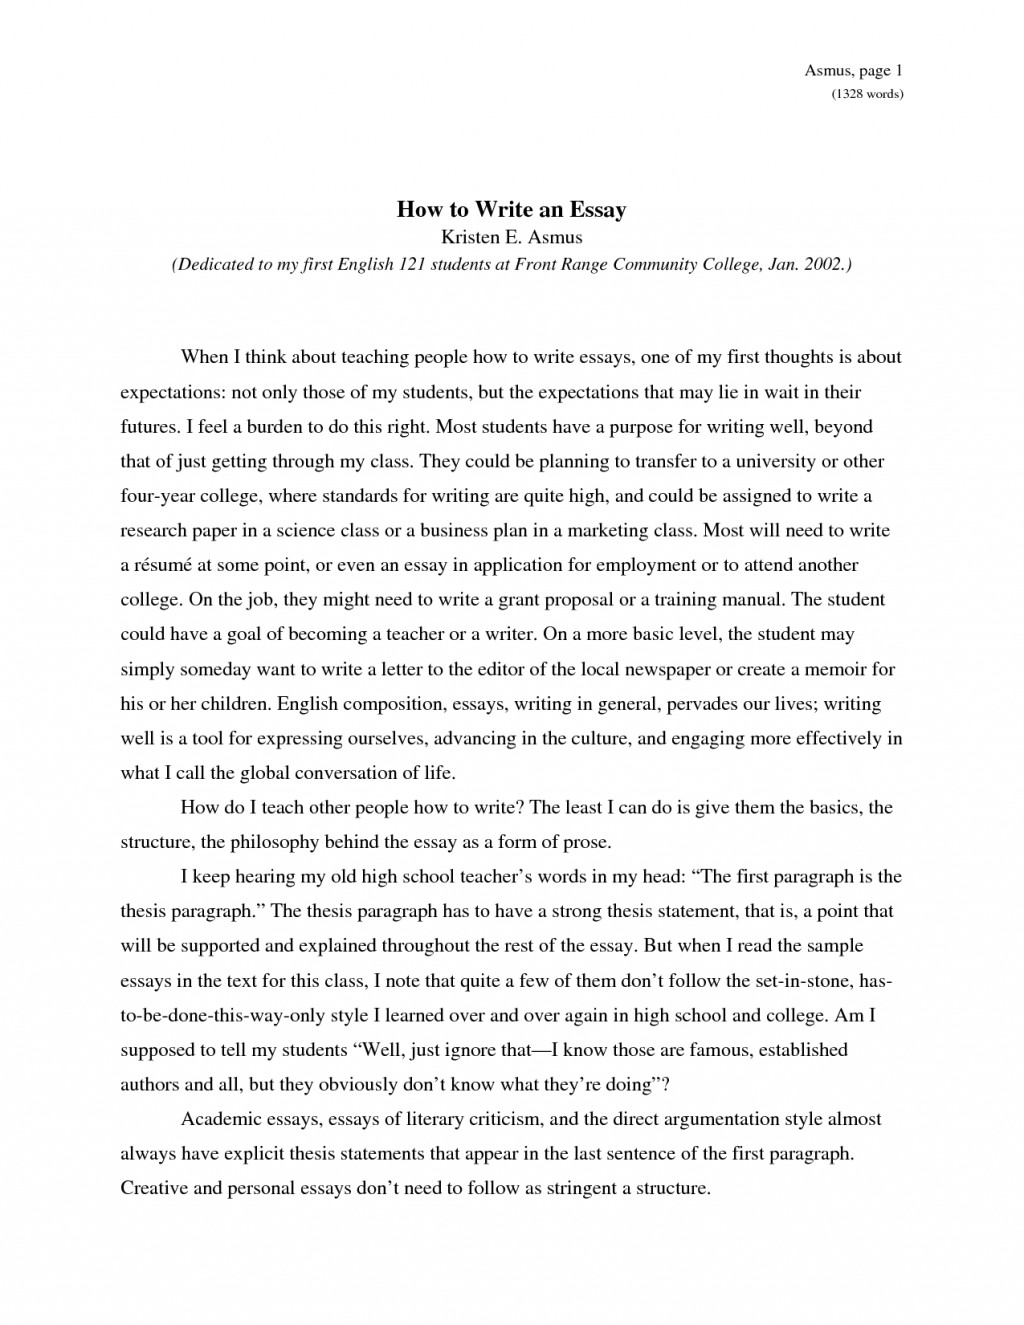 009 W8zti9kc8d Essay Example How To Type Awesome An Fast A One Page Paper In Apa Format Mla On Mac Large